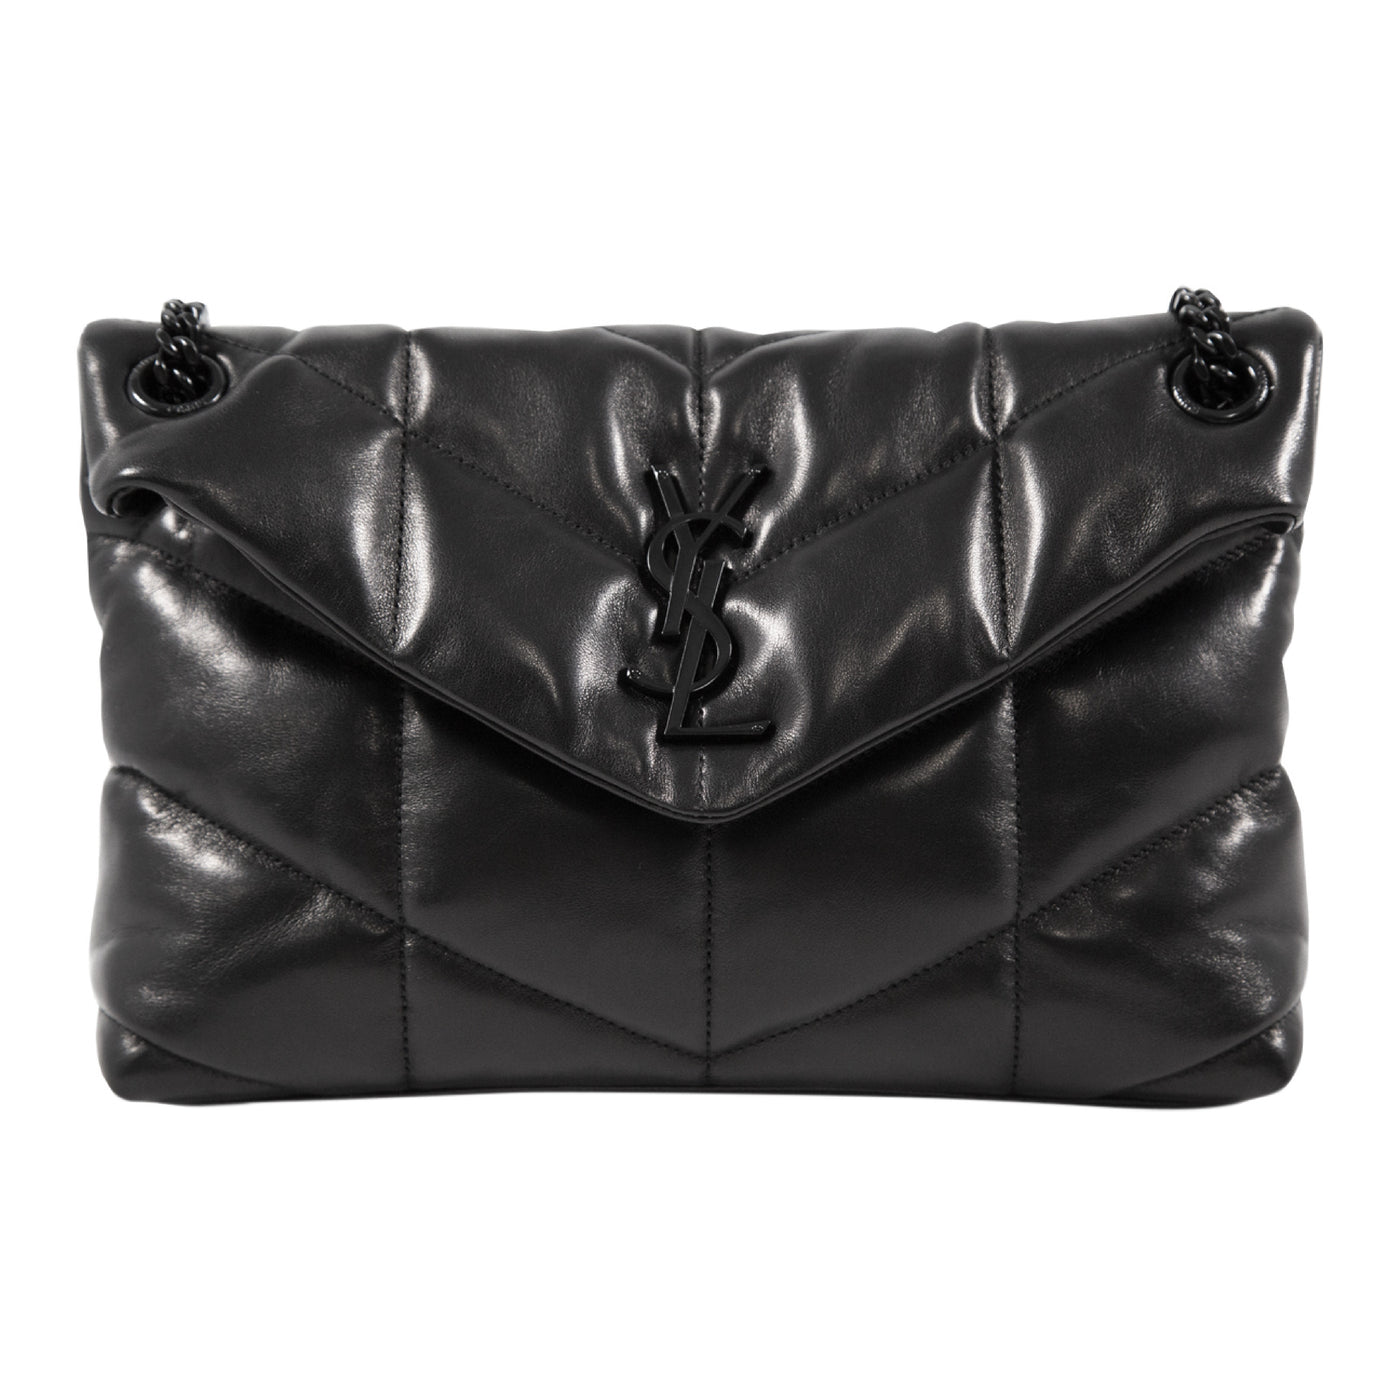 Load image into Gallery viewer, SAINT LAURENT LOULOU SMALL BAG BLACK